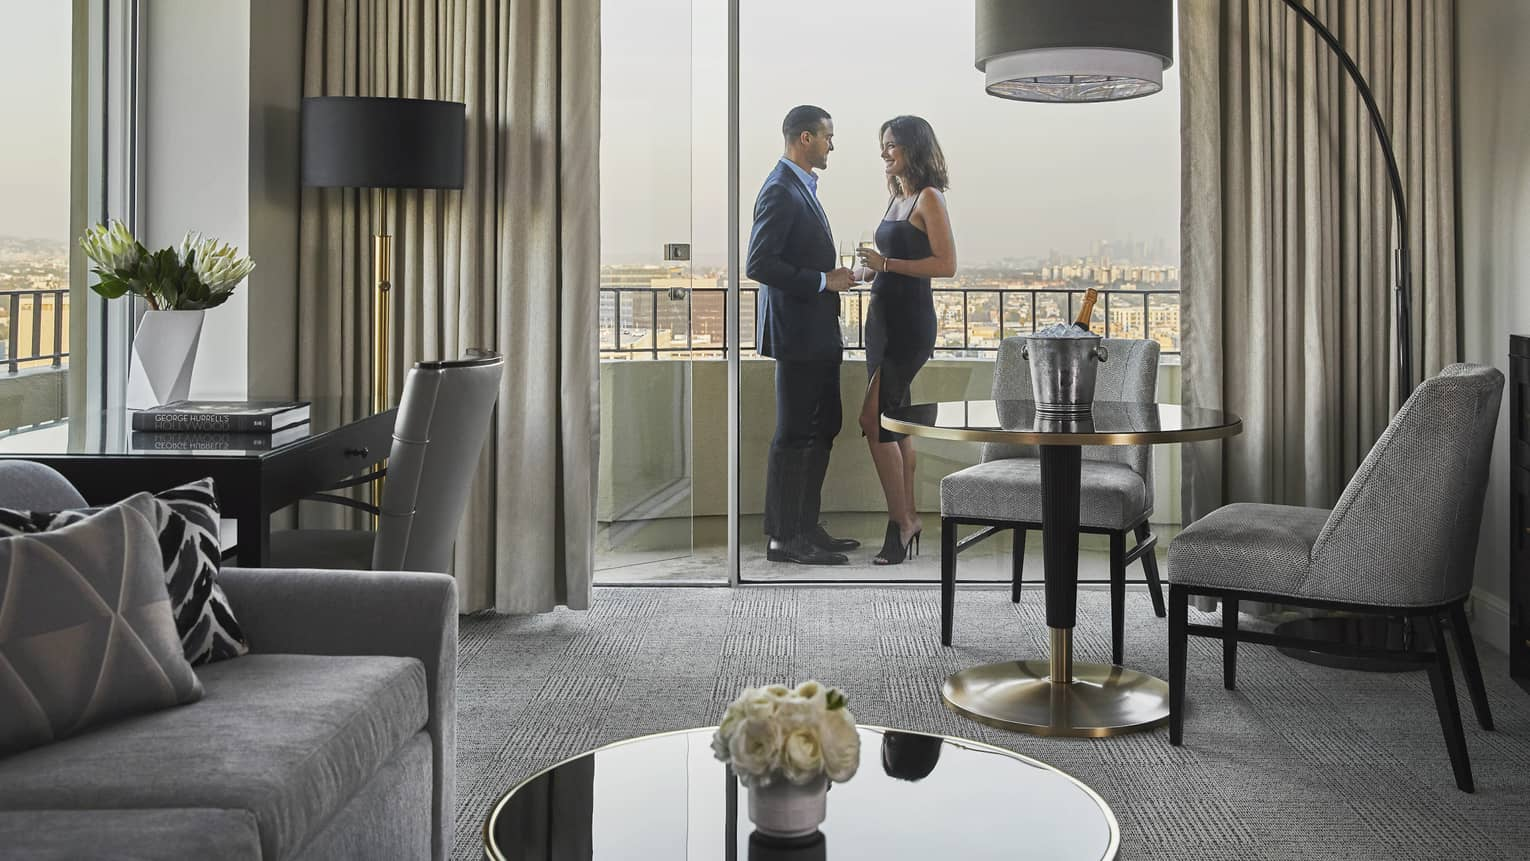 Couple wearing formal attire stand on hotel suite patio off seating area